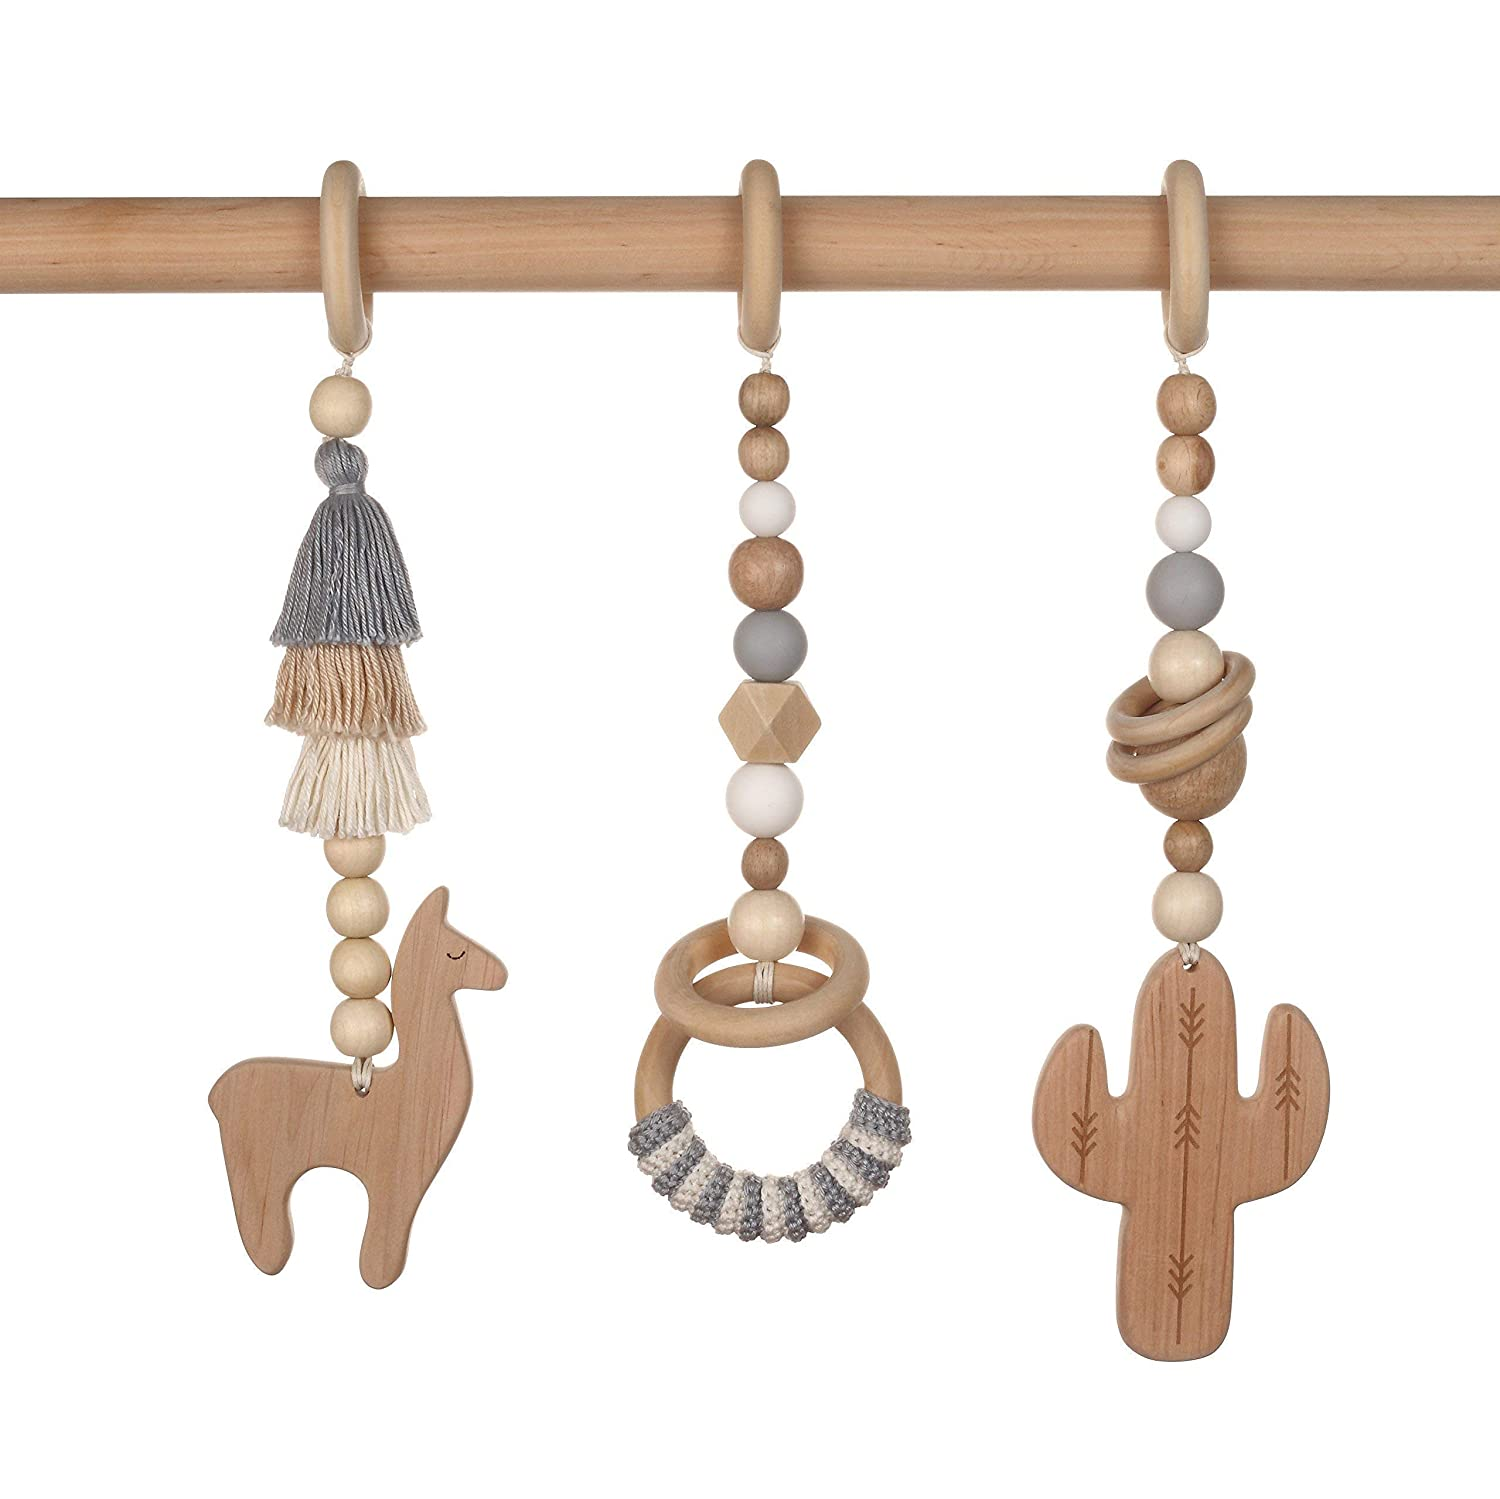 Wooden baby gym mobiles. Set of 3: llama, cactus, ring. Desert. Boho. Travel. Play Gym Wood Accessory. Activity center. Baby Shower Gift.